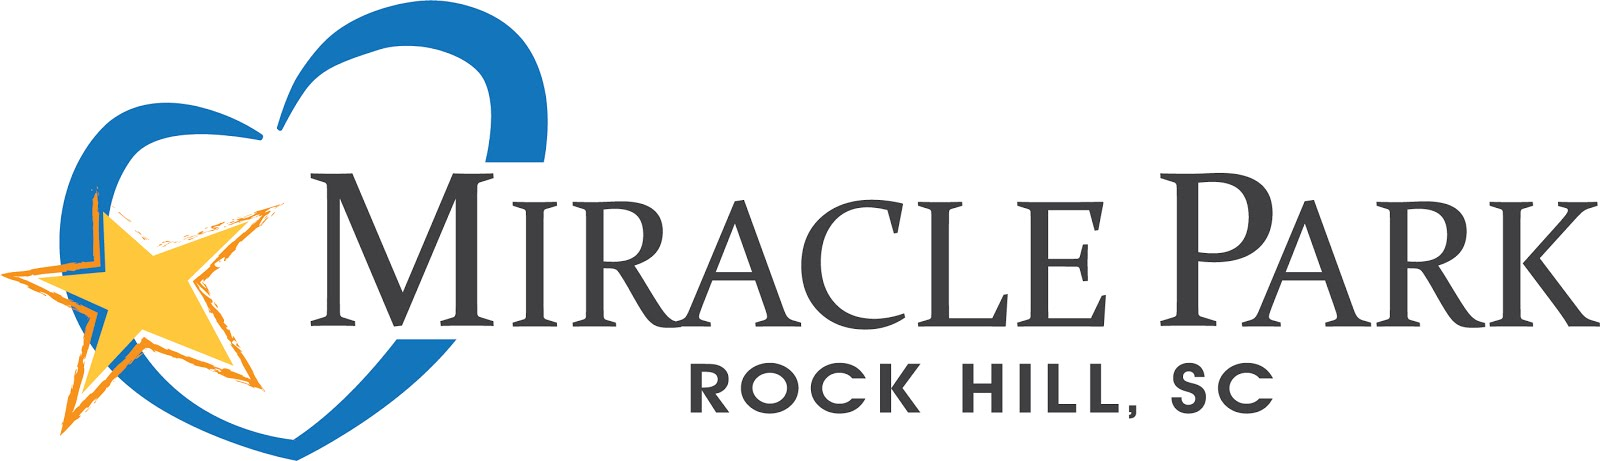 Rock Hill Miracle Park